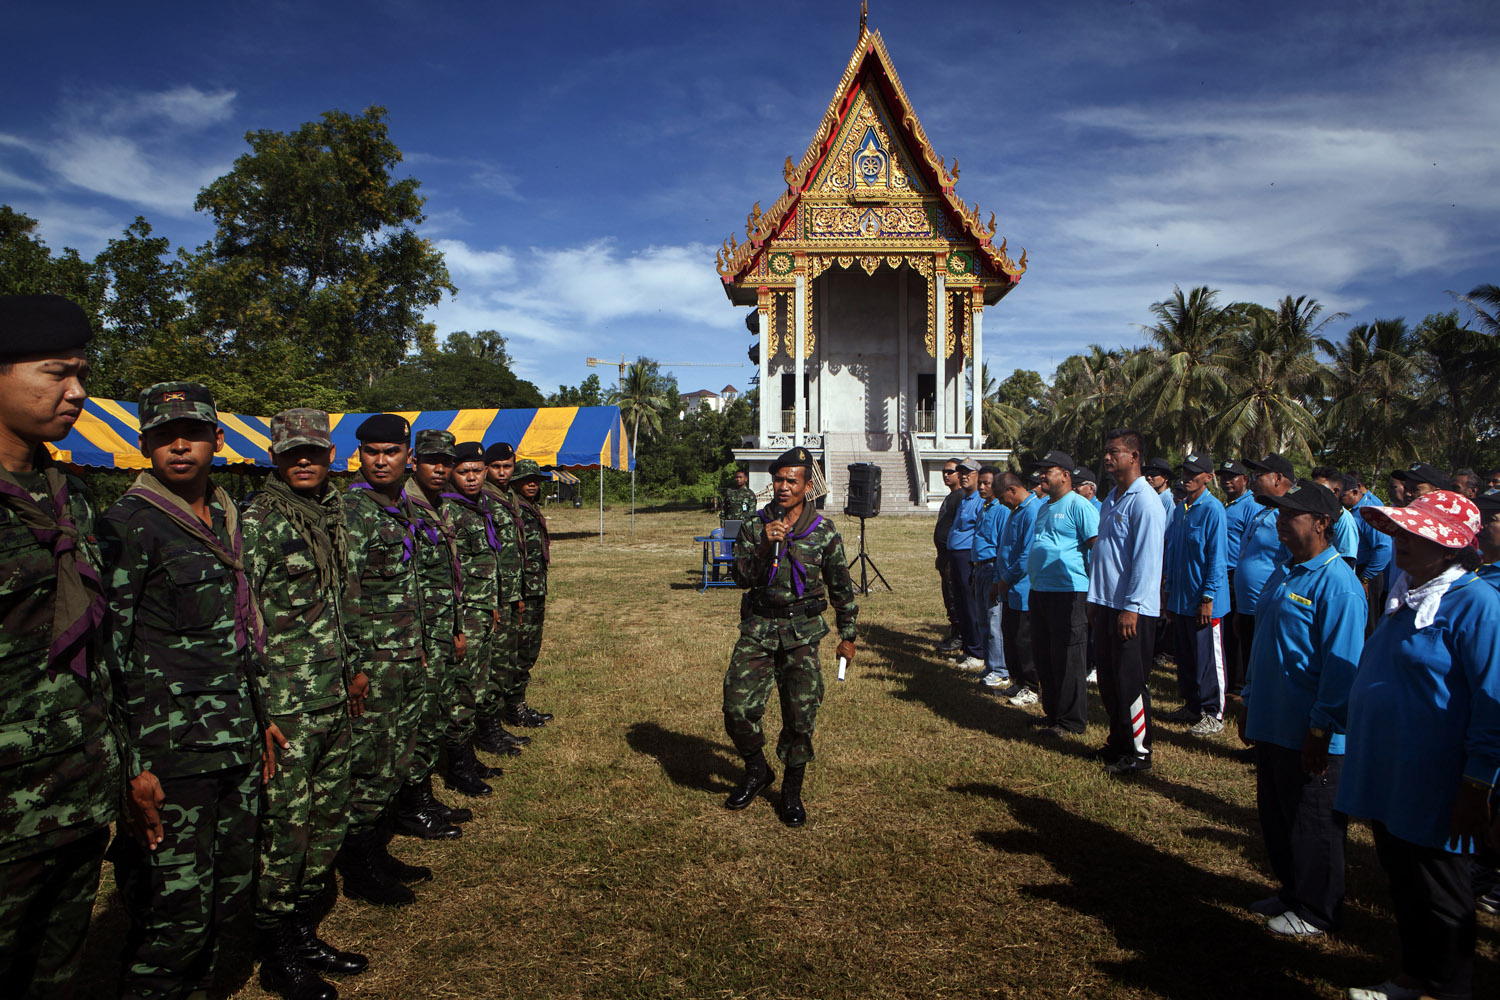 Lieutenant Sawai Kongsit (center) talks to military trainers from the 23rd Battalion of the Thai Army (left) and Buddhist volunteer defense militia (right) during a training session at the Lak Muang Temple in Pattani.